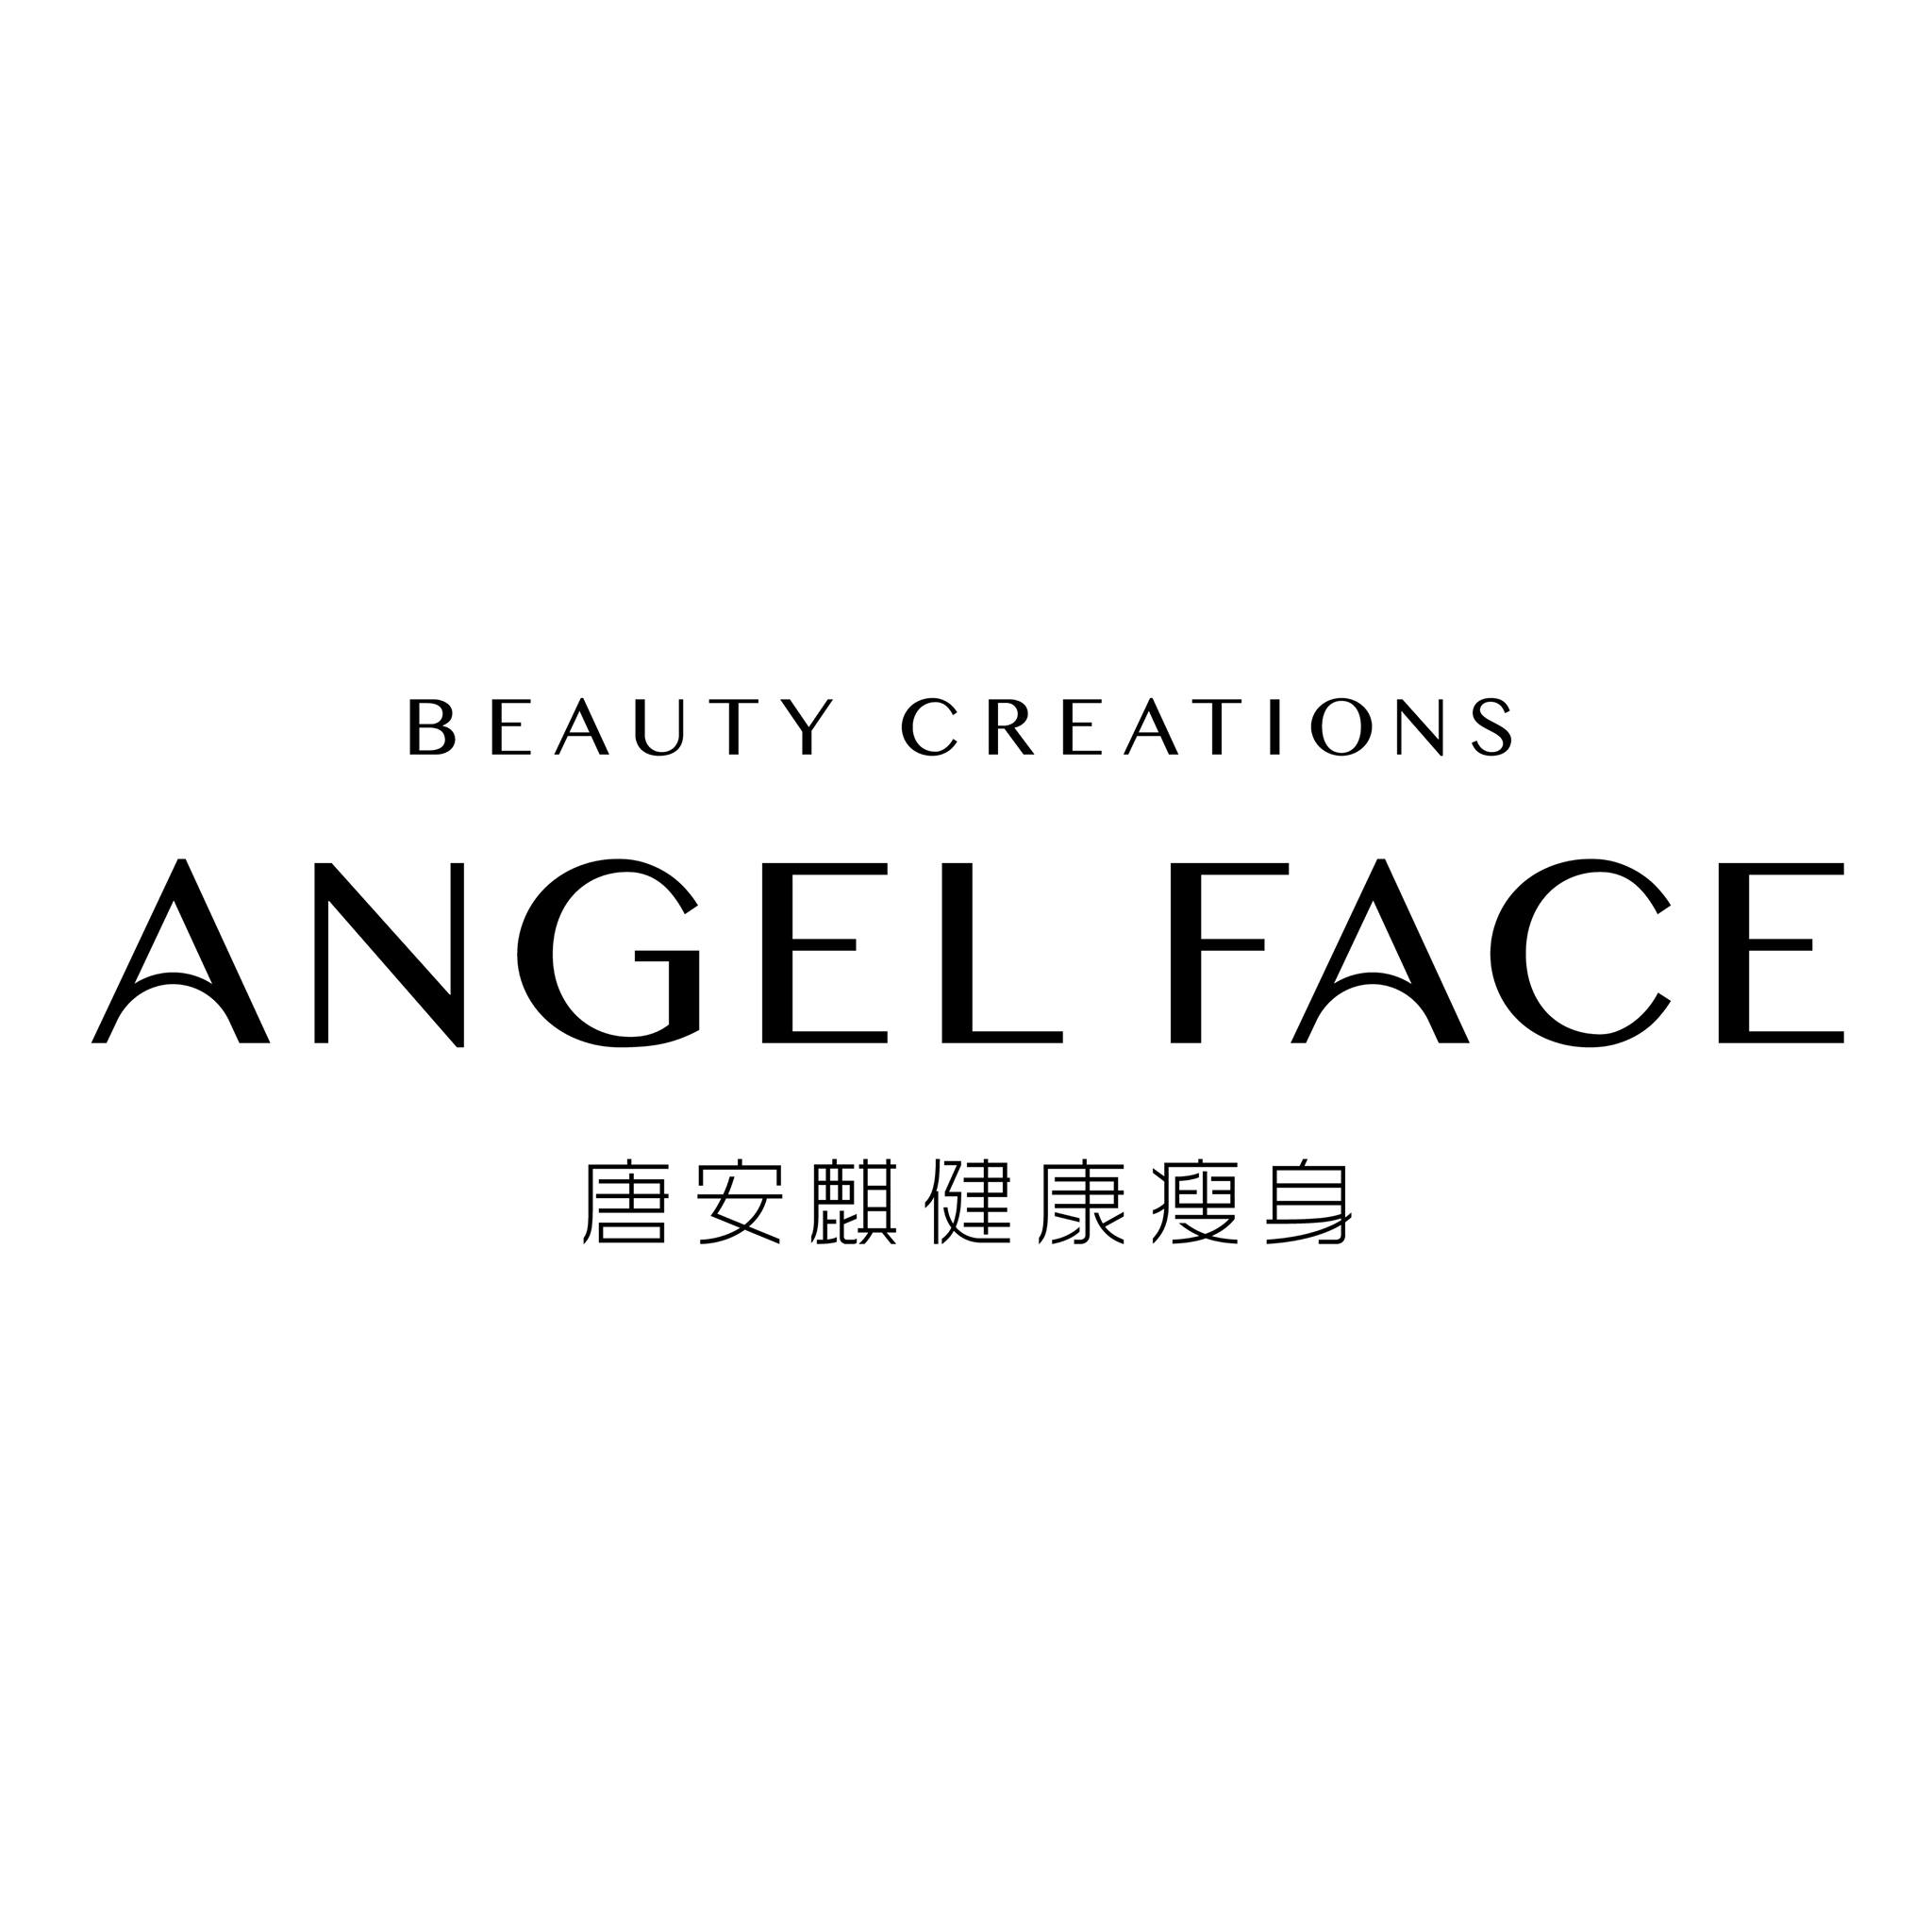 美容院 Beauty Salon 集團Angel Face (石門店) @ 香港美容網 HK Beauty Salon